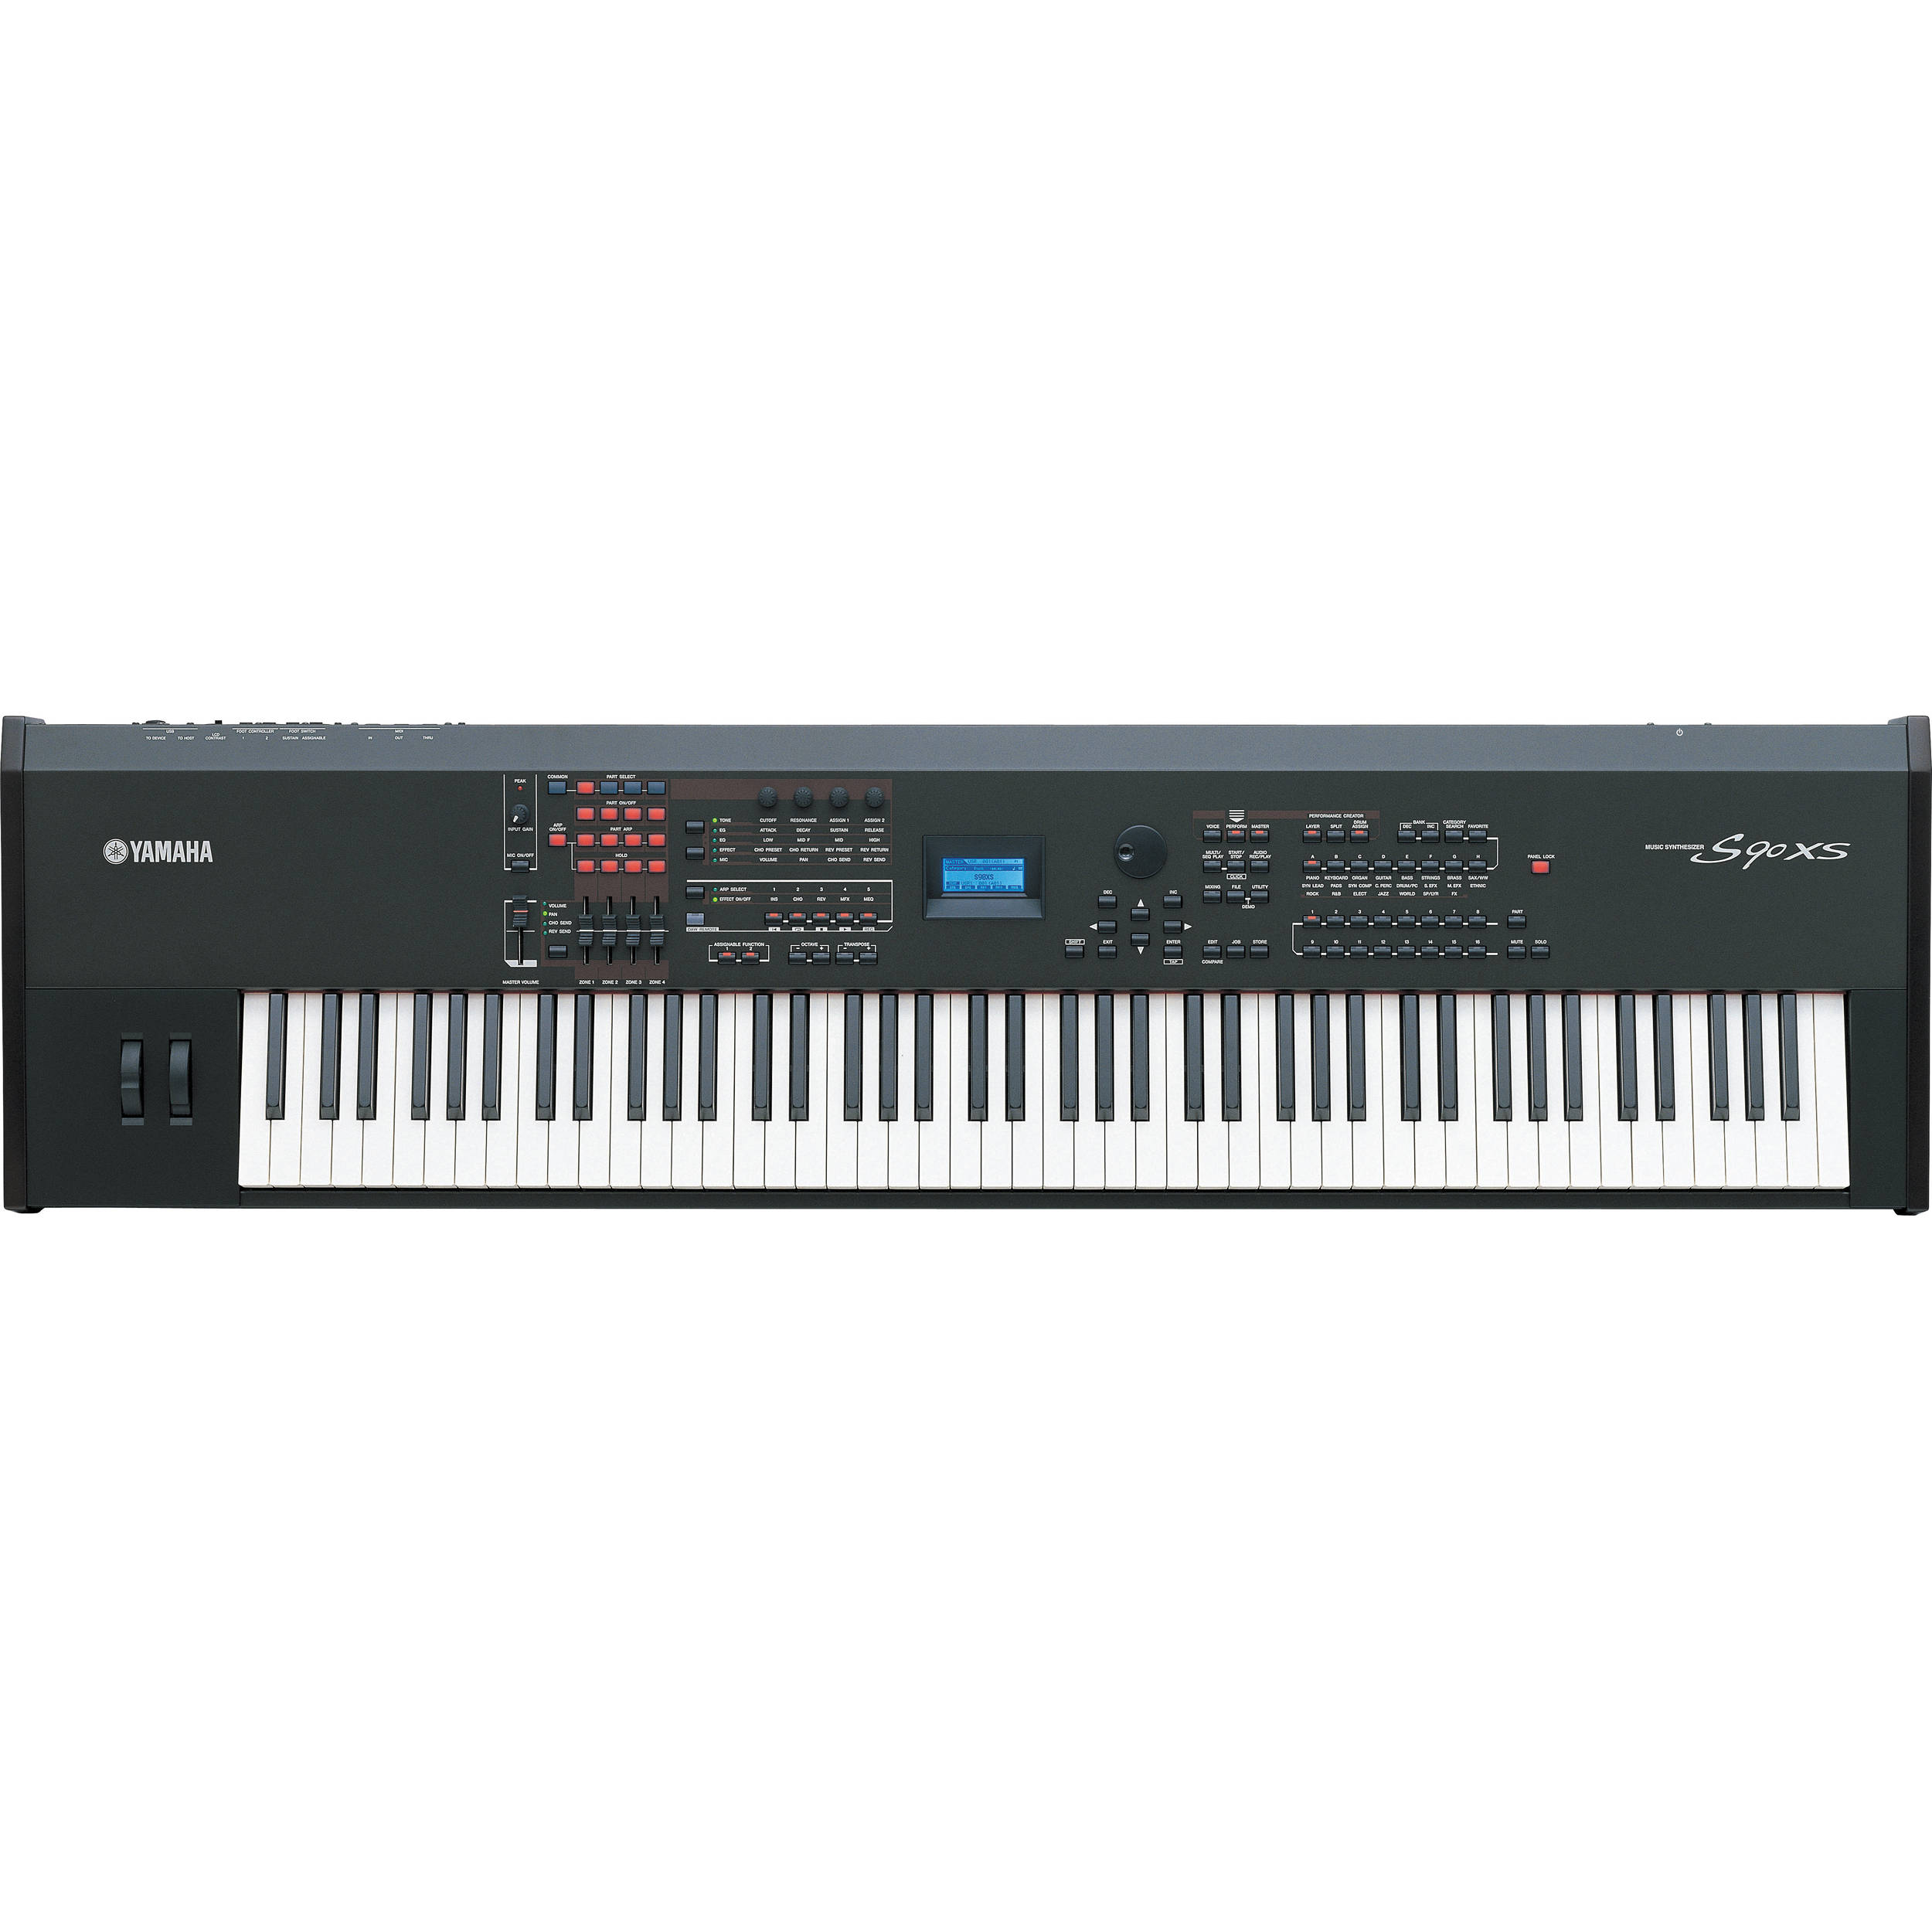 Image Result For Keyboard Yamaha S Xs